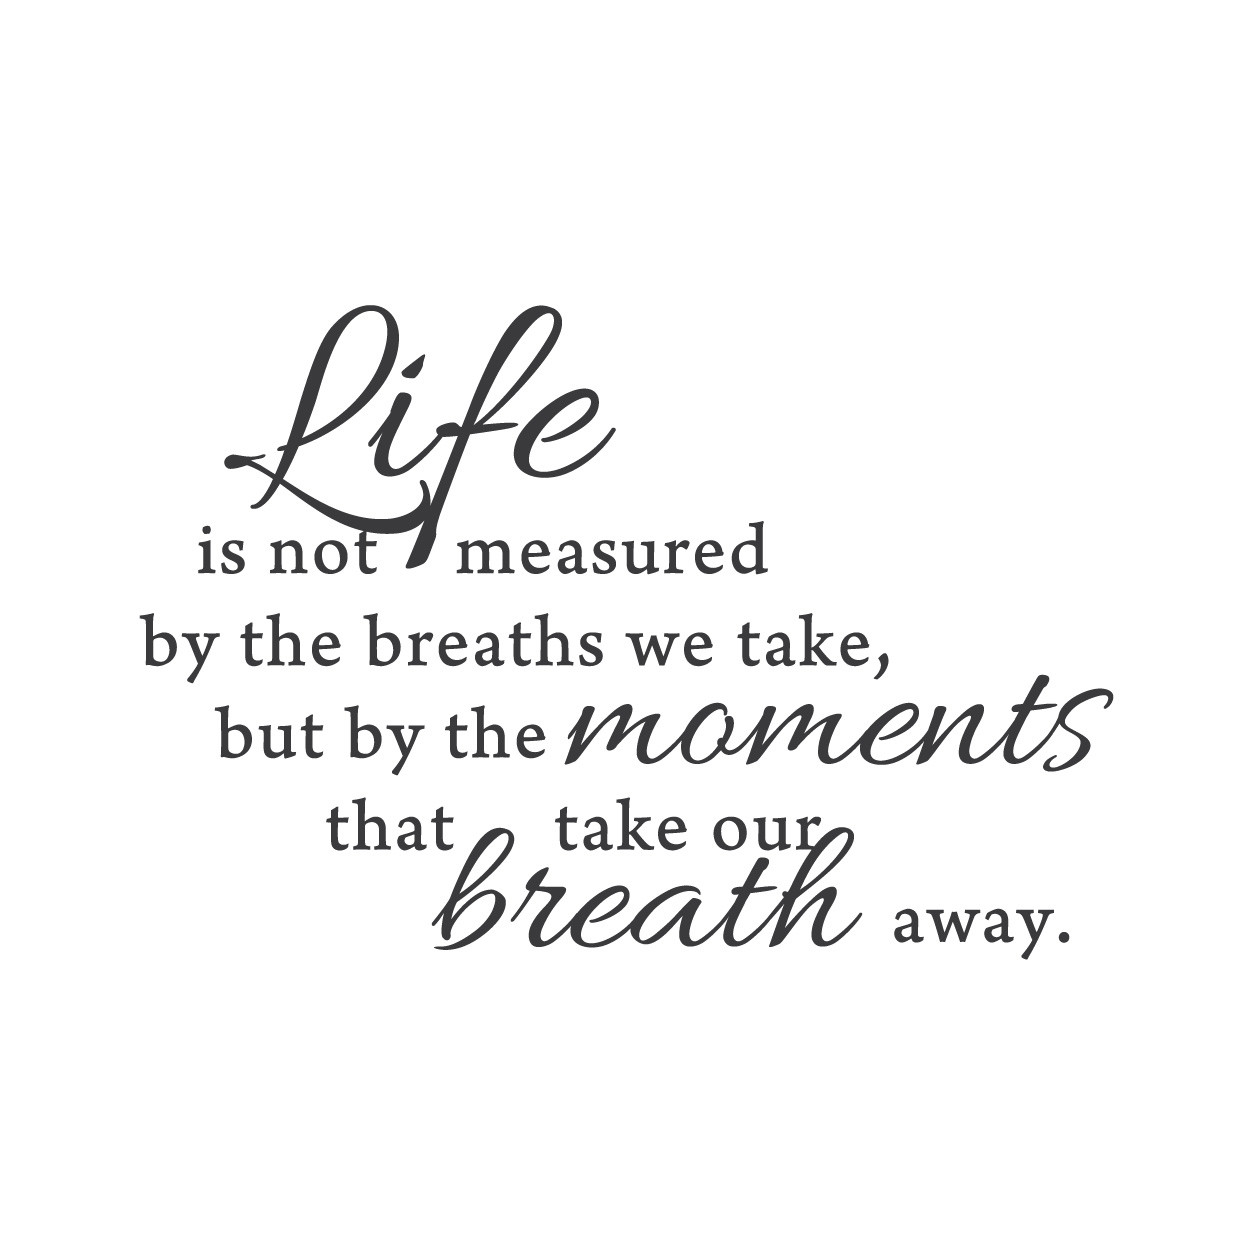 Life Is Not Measured Quote Quotes About Life Breath Away 27 Quotes